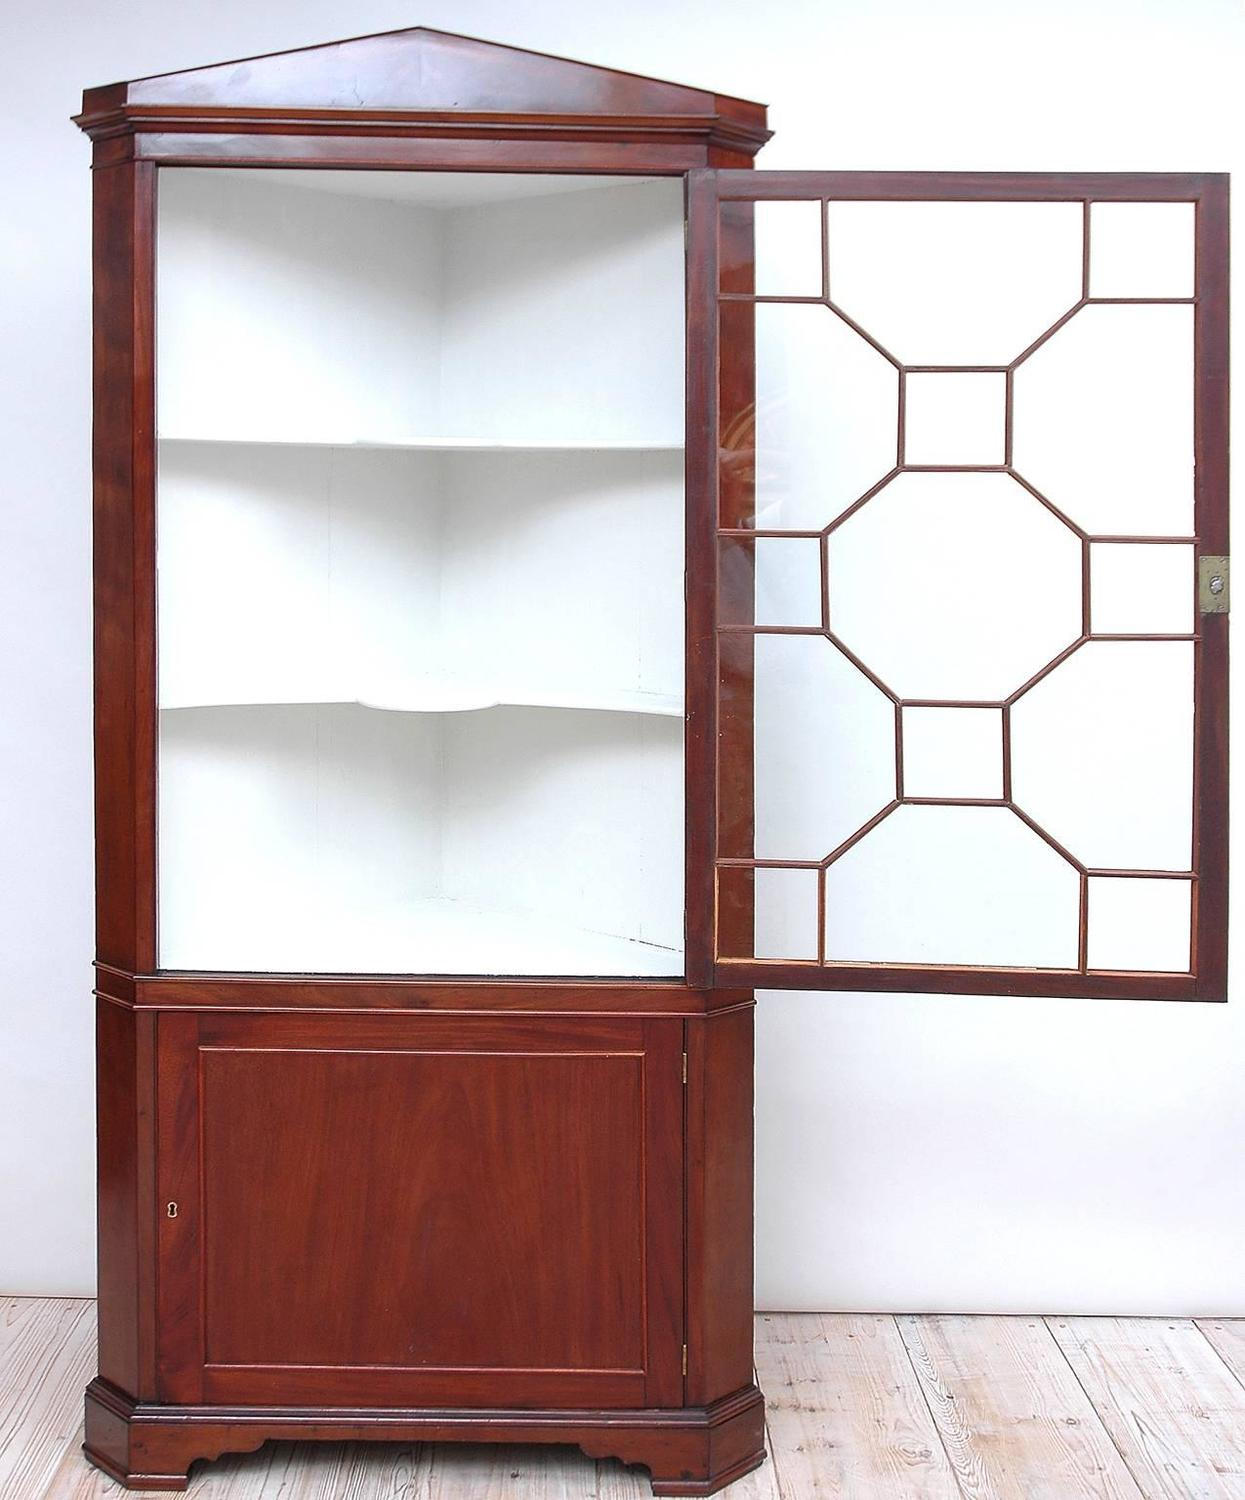 English Regency Corner Cabinet In Mahogany With Glass